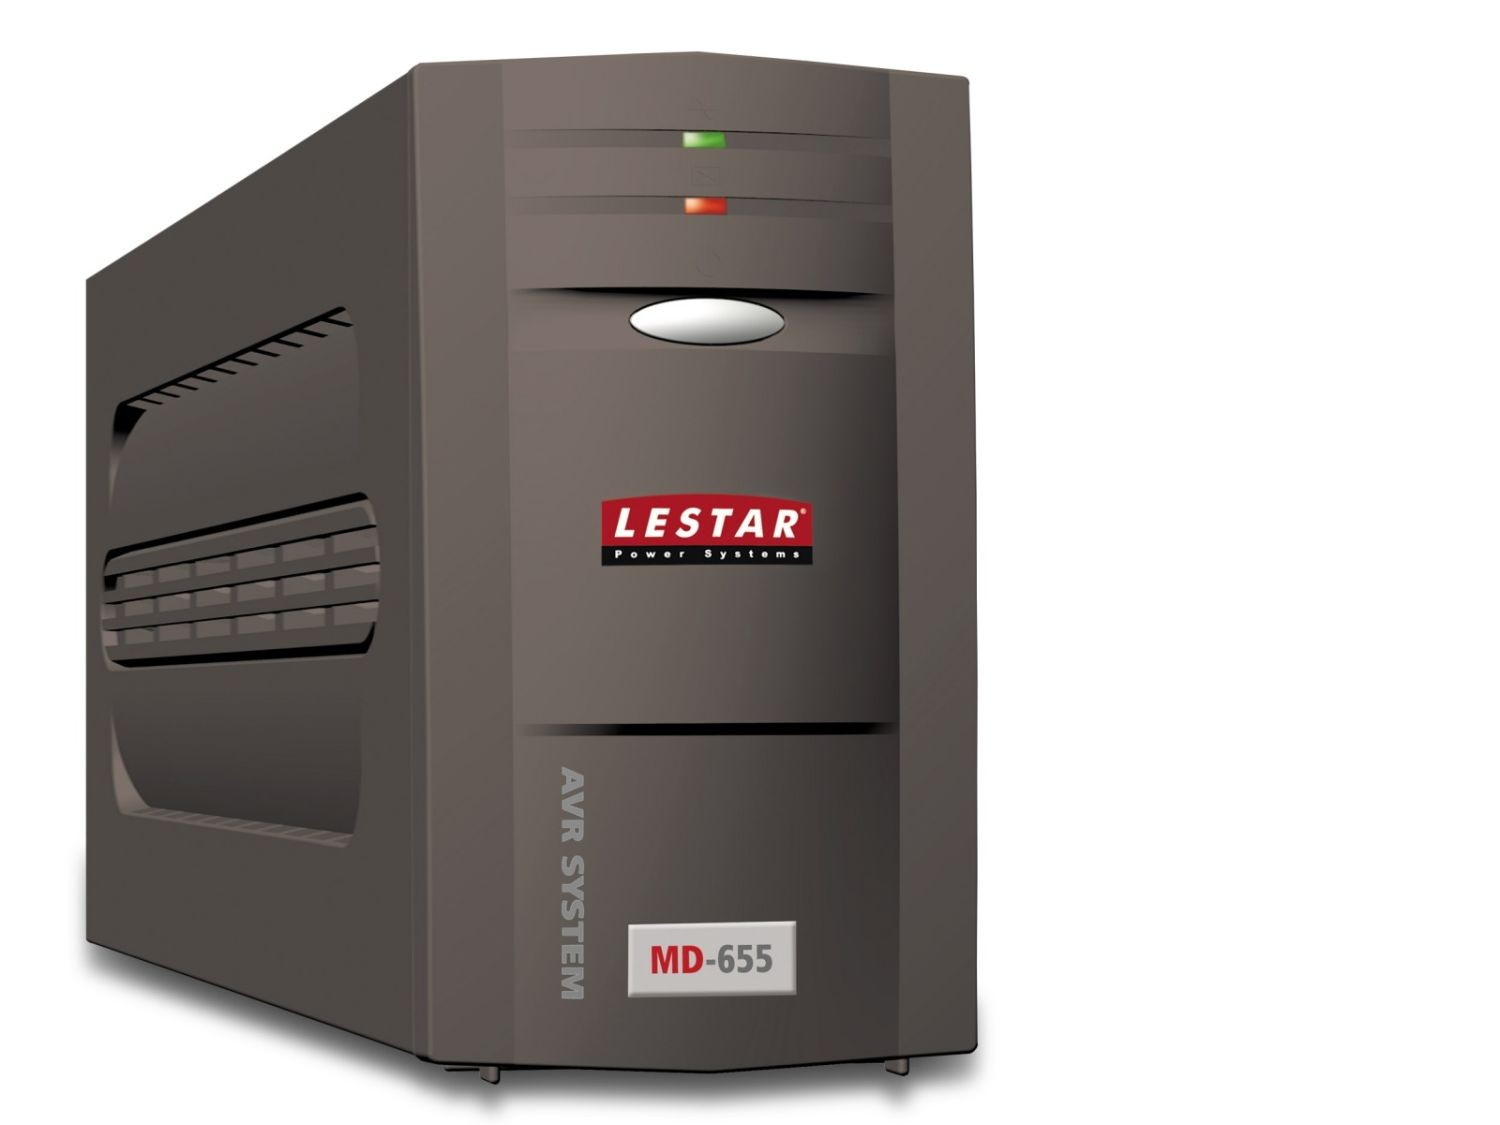 Lestar UPS MD-655 625VA/375W AVR 3xIEC + 1xIEC printer USB RJ 11 BLACK